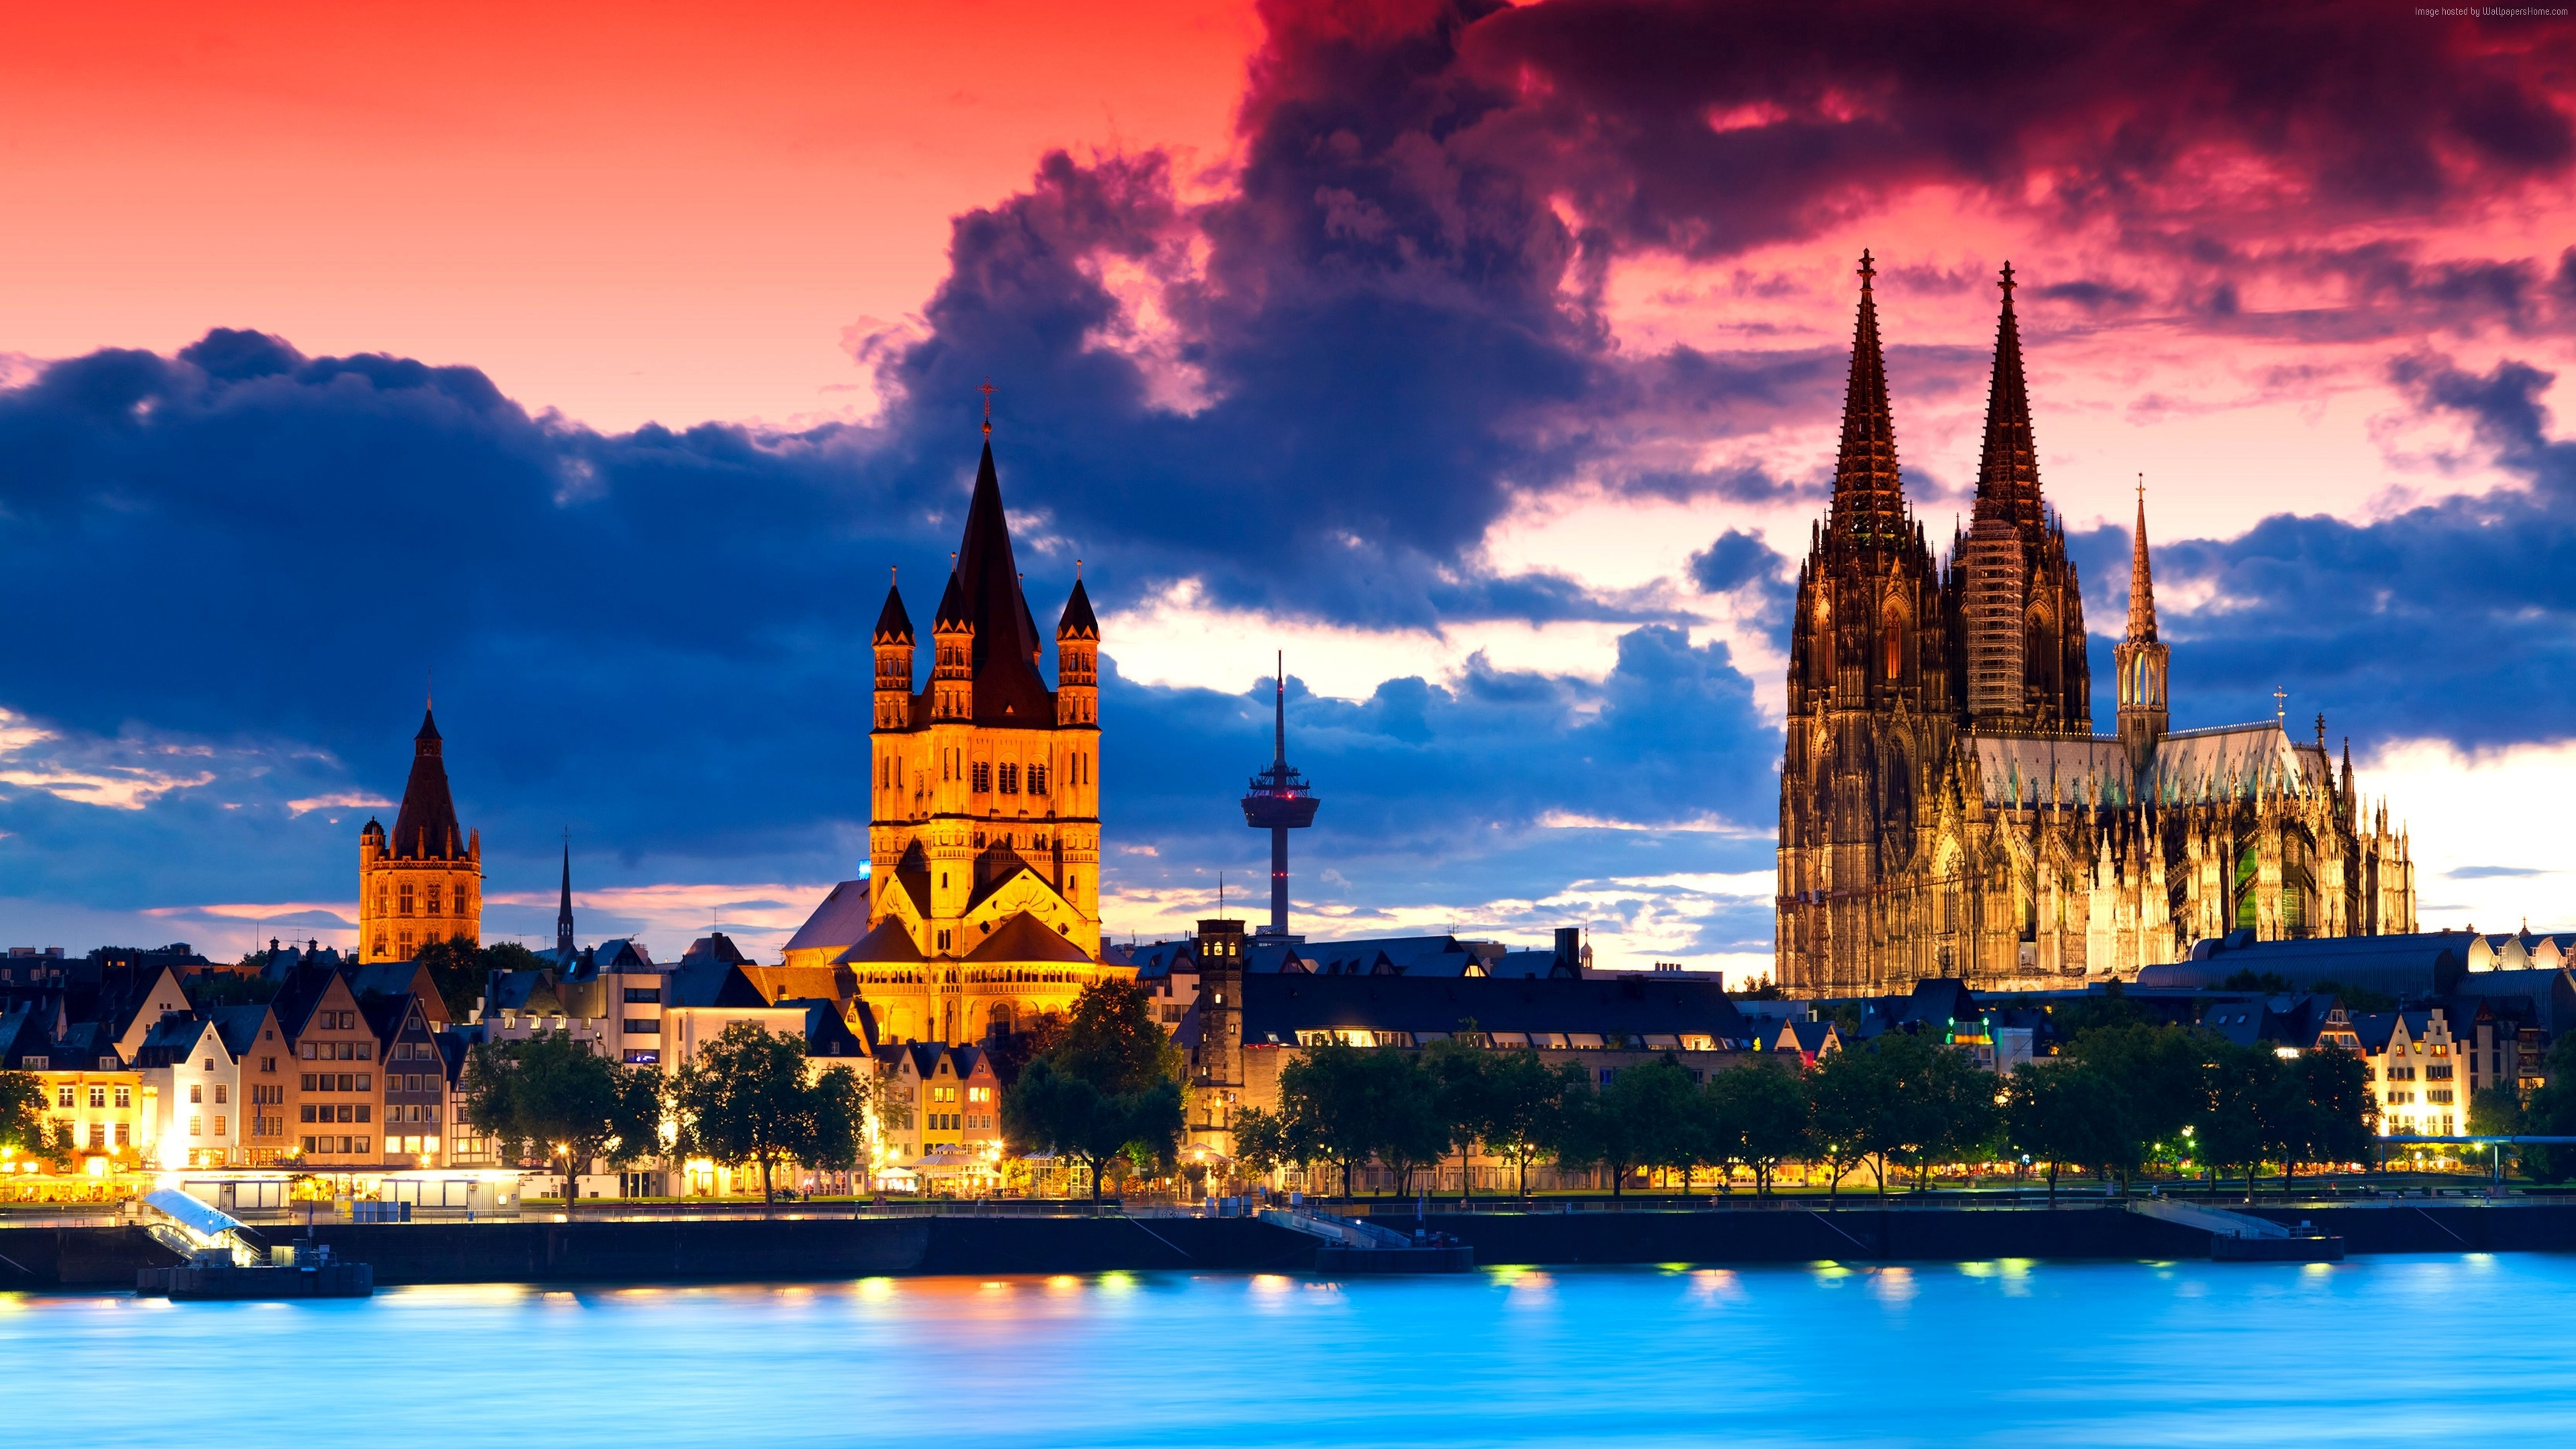 Wallpaper Cologne Cathedral, Germany, Cologne, Europe, night, 4k, Architecture